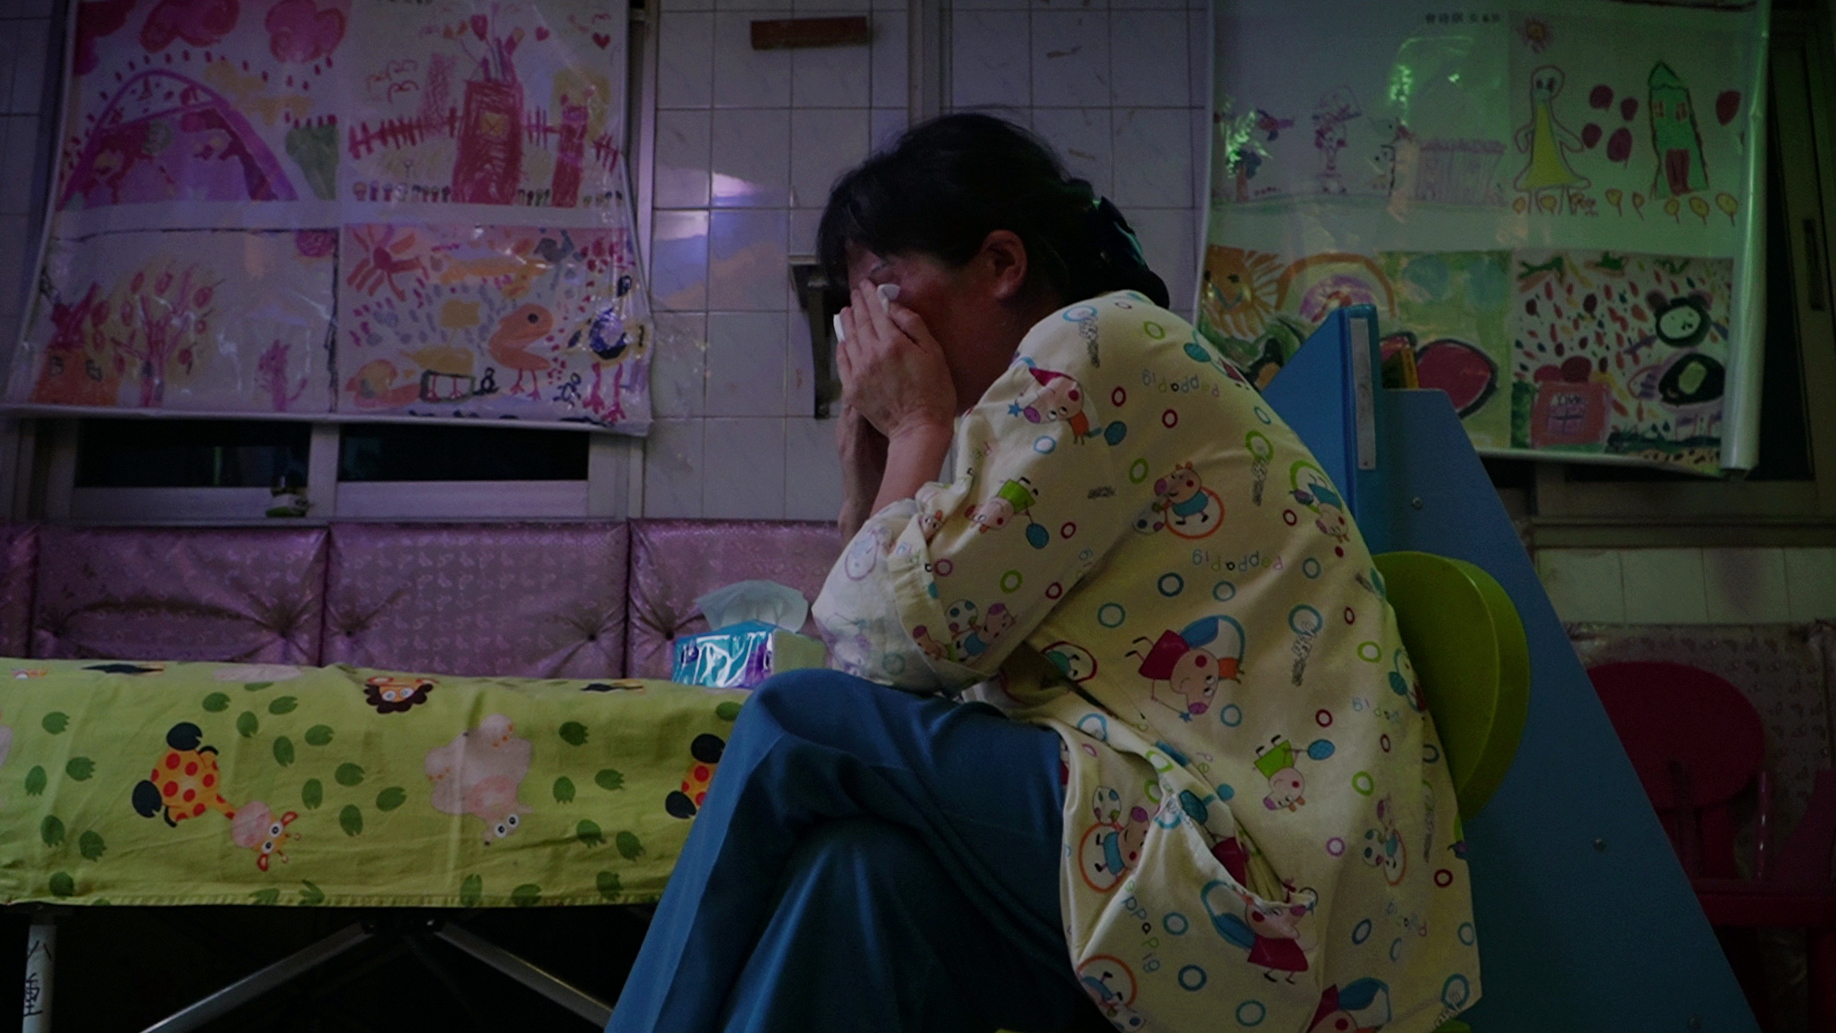 In a tiled room with colorful children's drawings covering the closed windows, a woman presses her hands against her face, crying into a tissue.